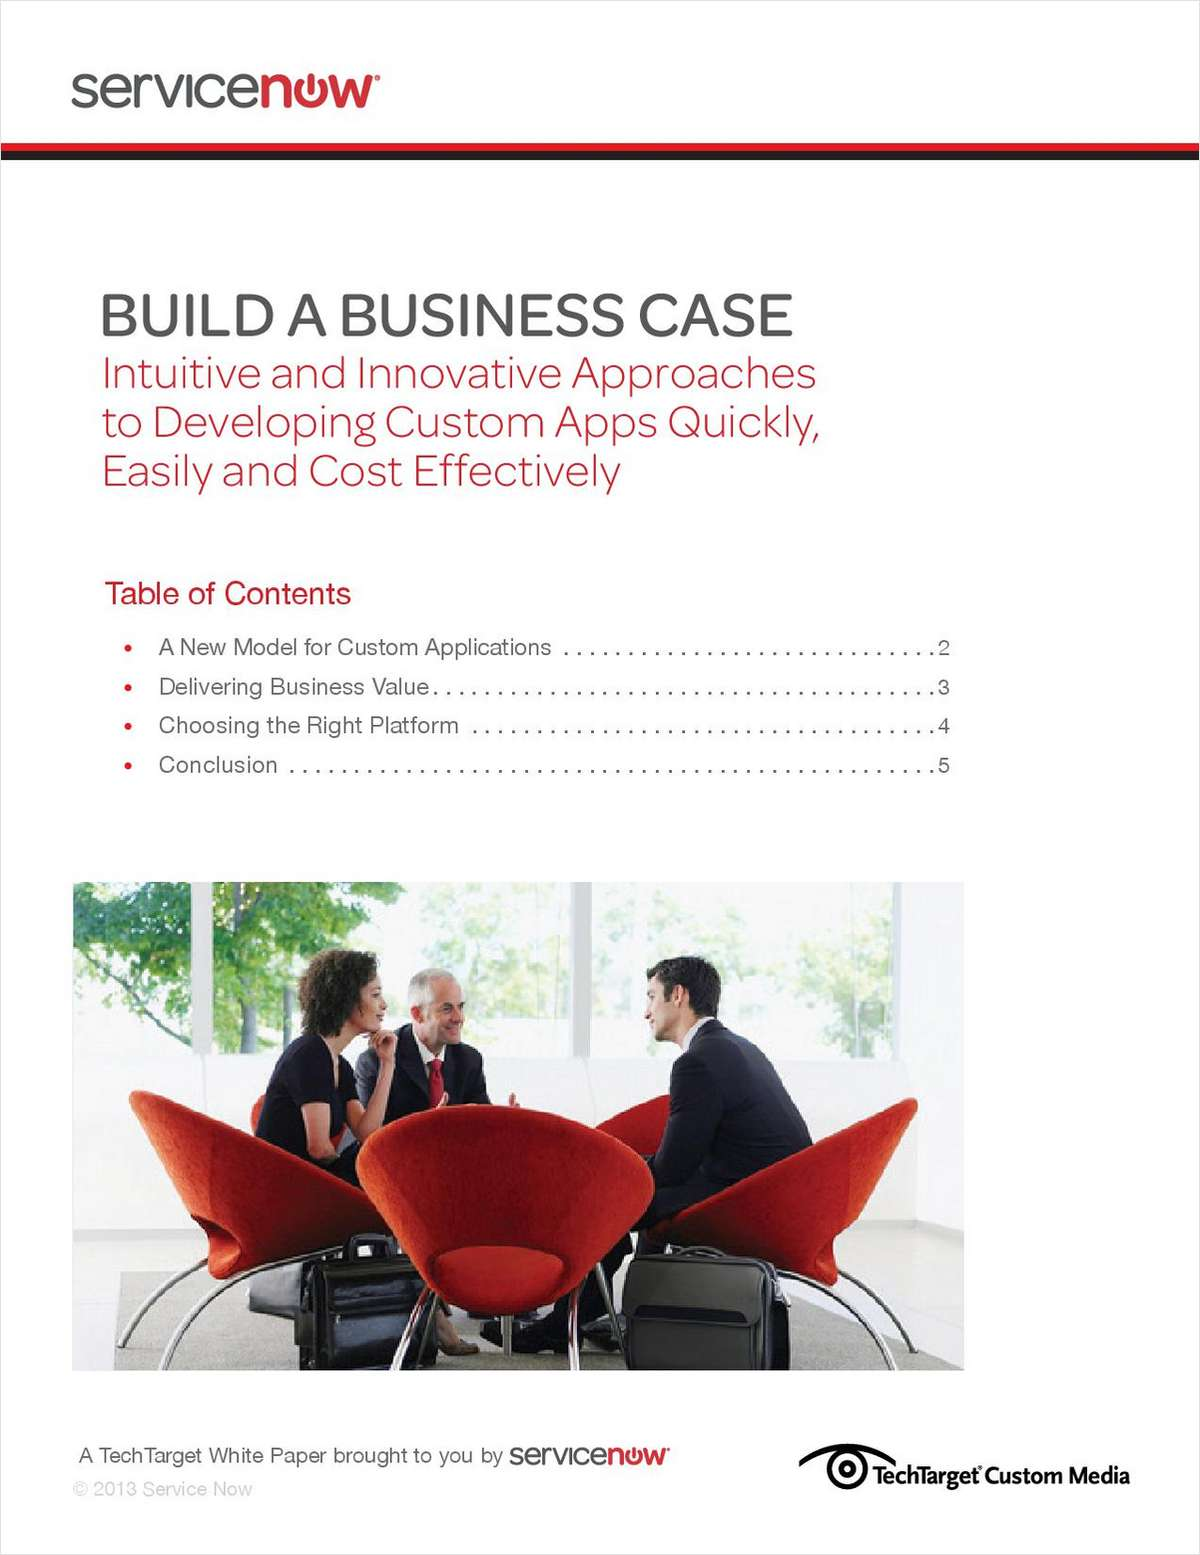 acenture business case Management consulting case interview questions answers solutions, list of top consulting firms company, case interview sample example preparation tips, business case study, consulting jobs.